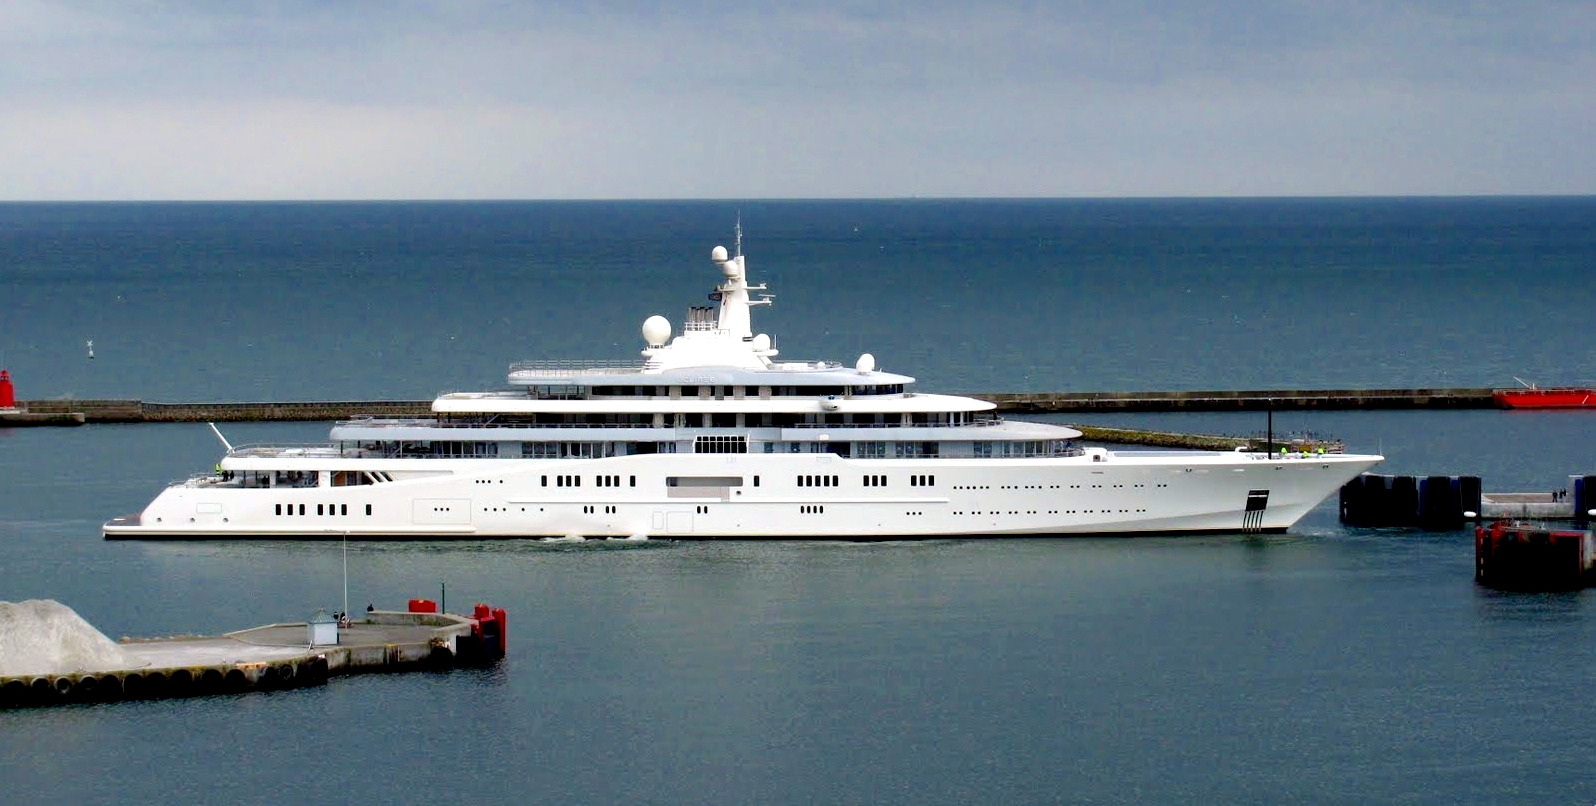 The Most Beautiful Celebrity Yachts MYEclipse Frederikshavn Denmark